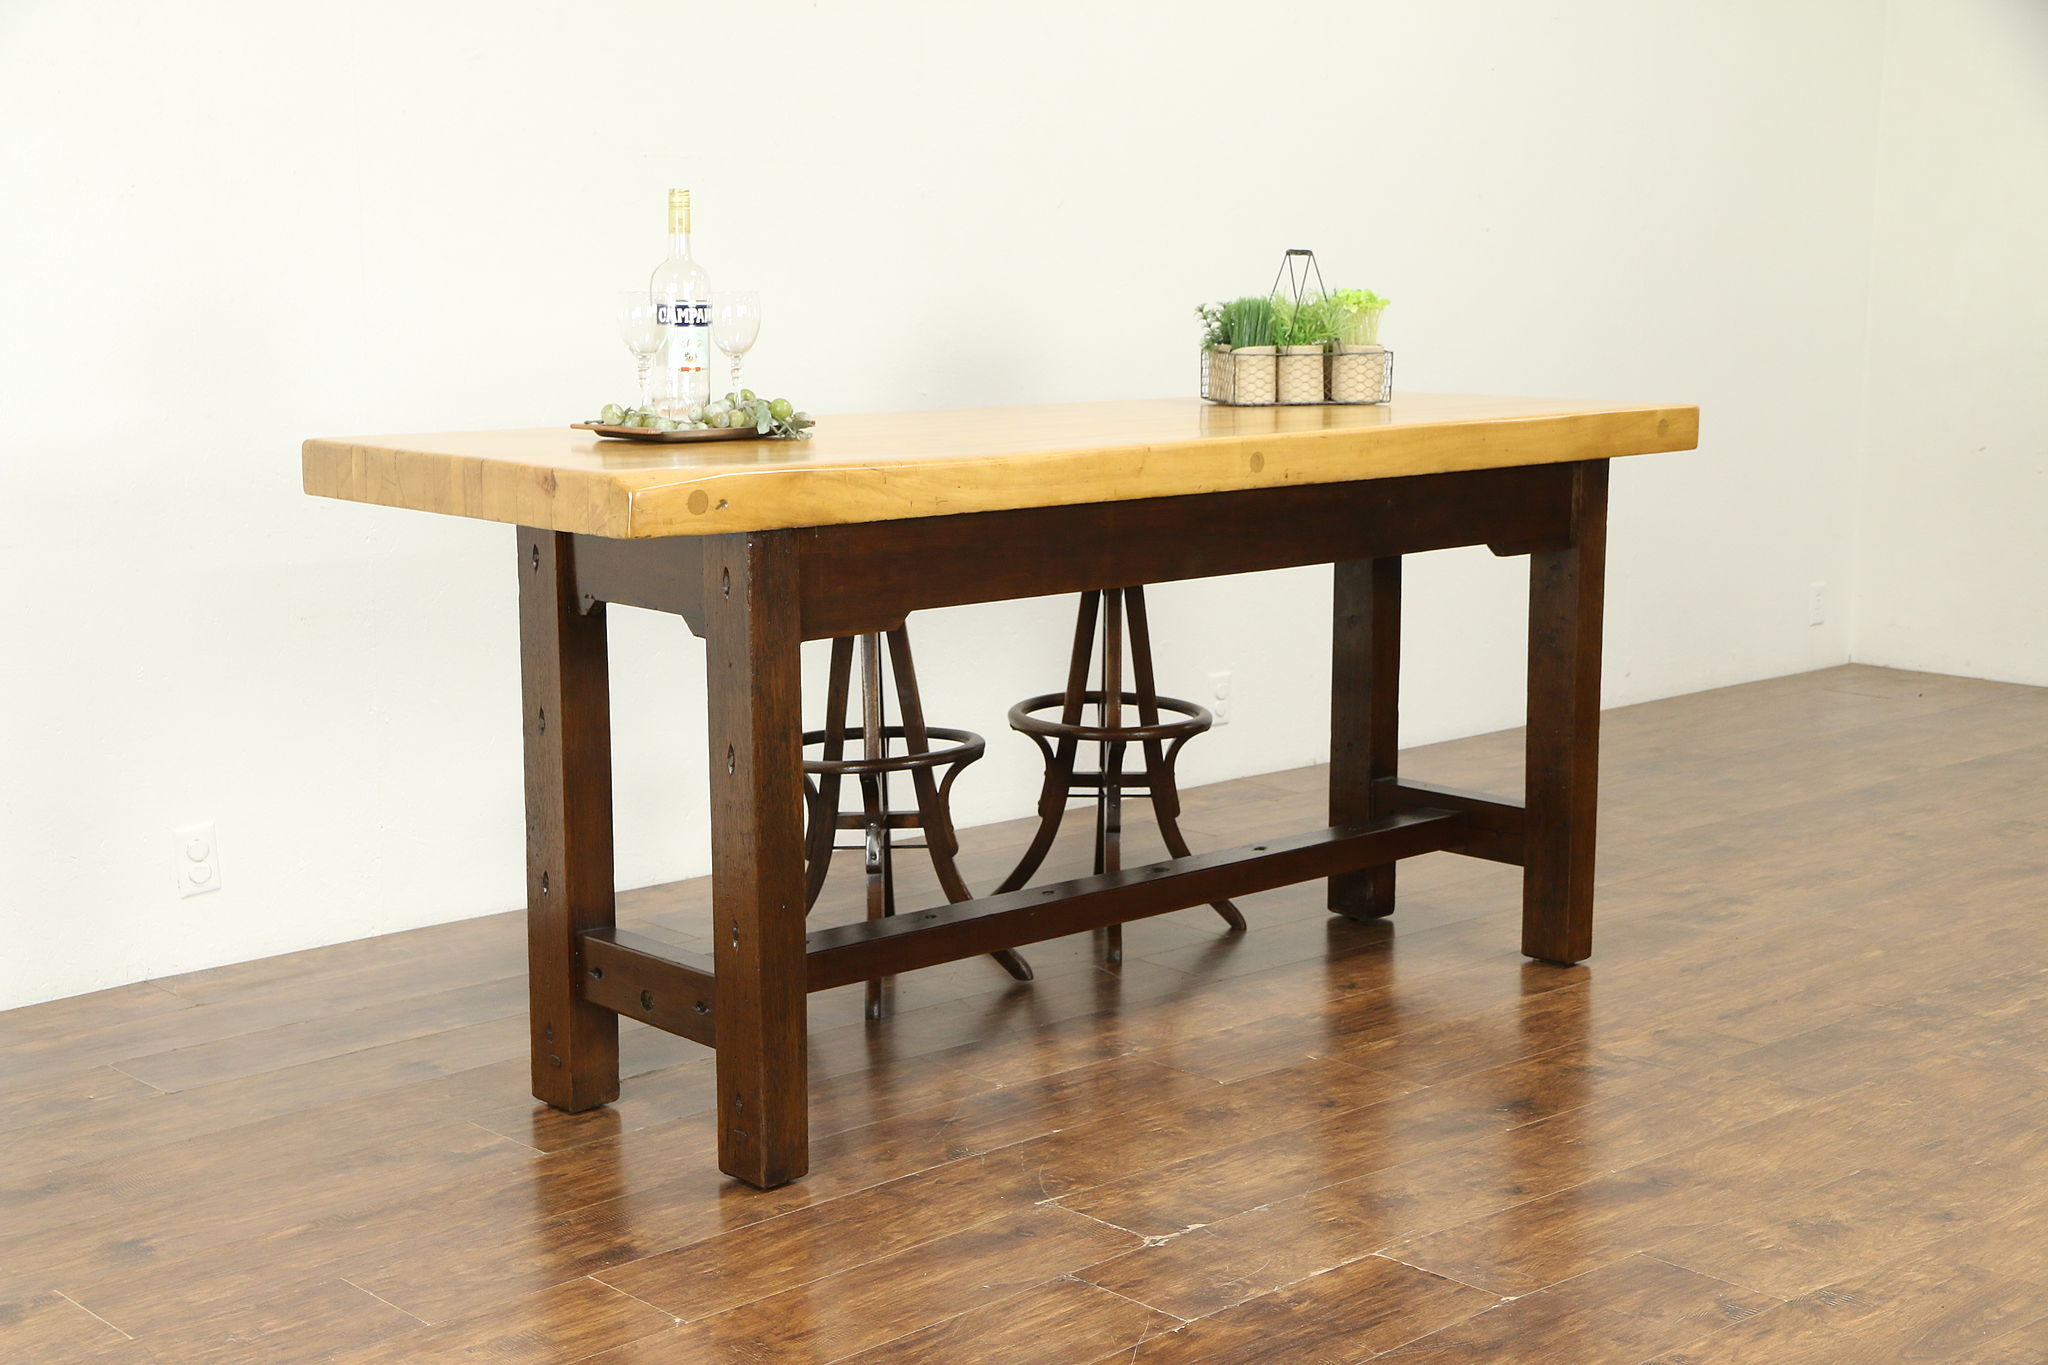 Butcher Block Kitchen Island Counter Or Stool Height Dining Table #30745 ...